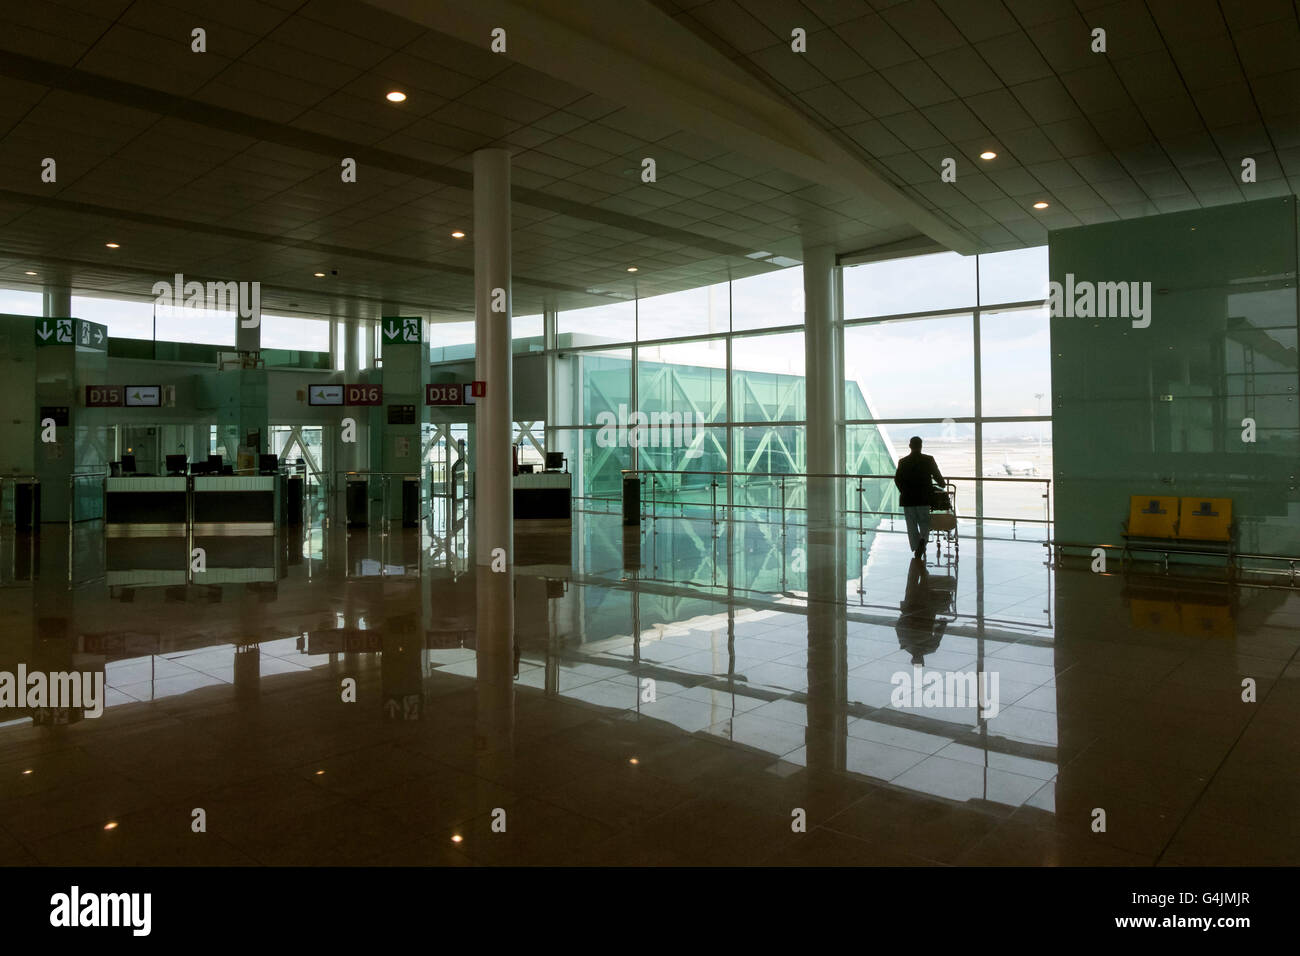 Flight delays. Business traveler silhouetted against the departure gate window, waits to board at Barcelona Airport, - Stock Image